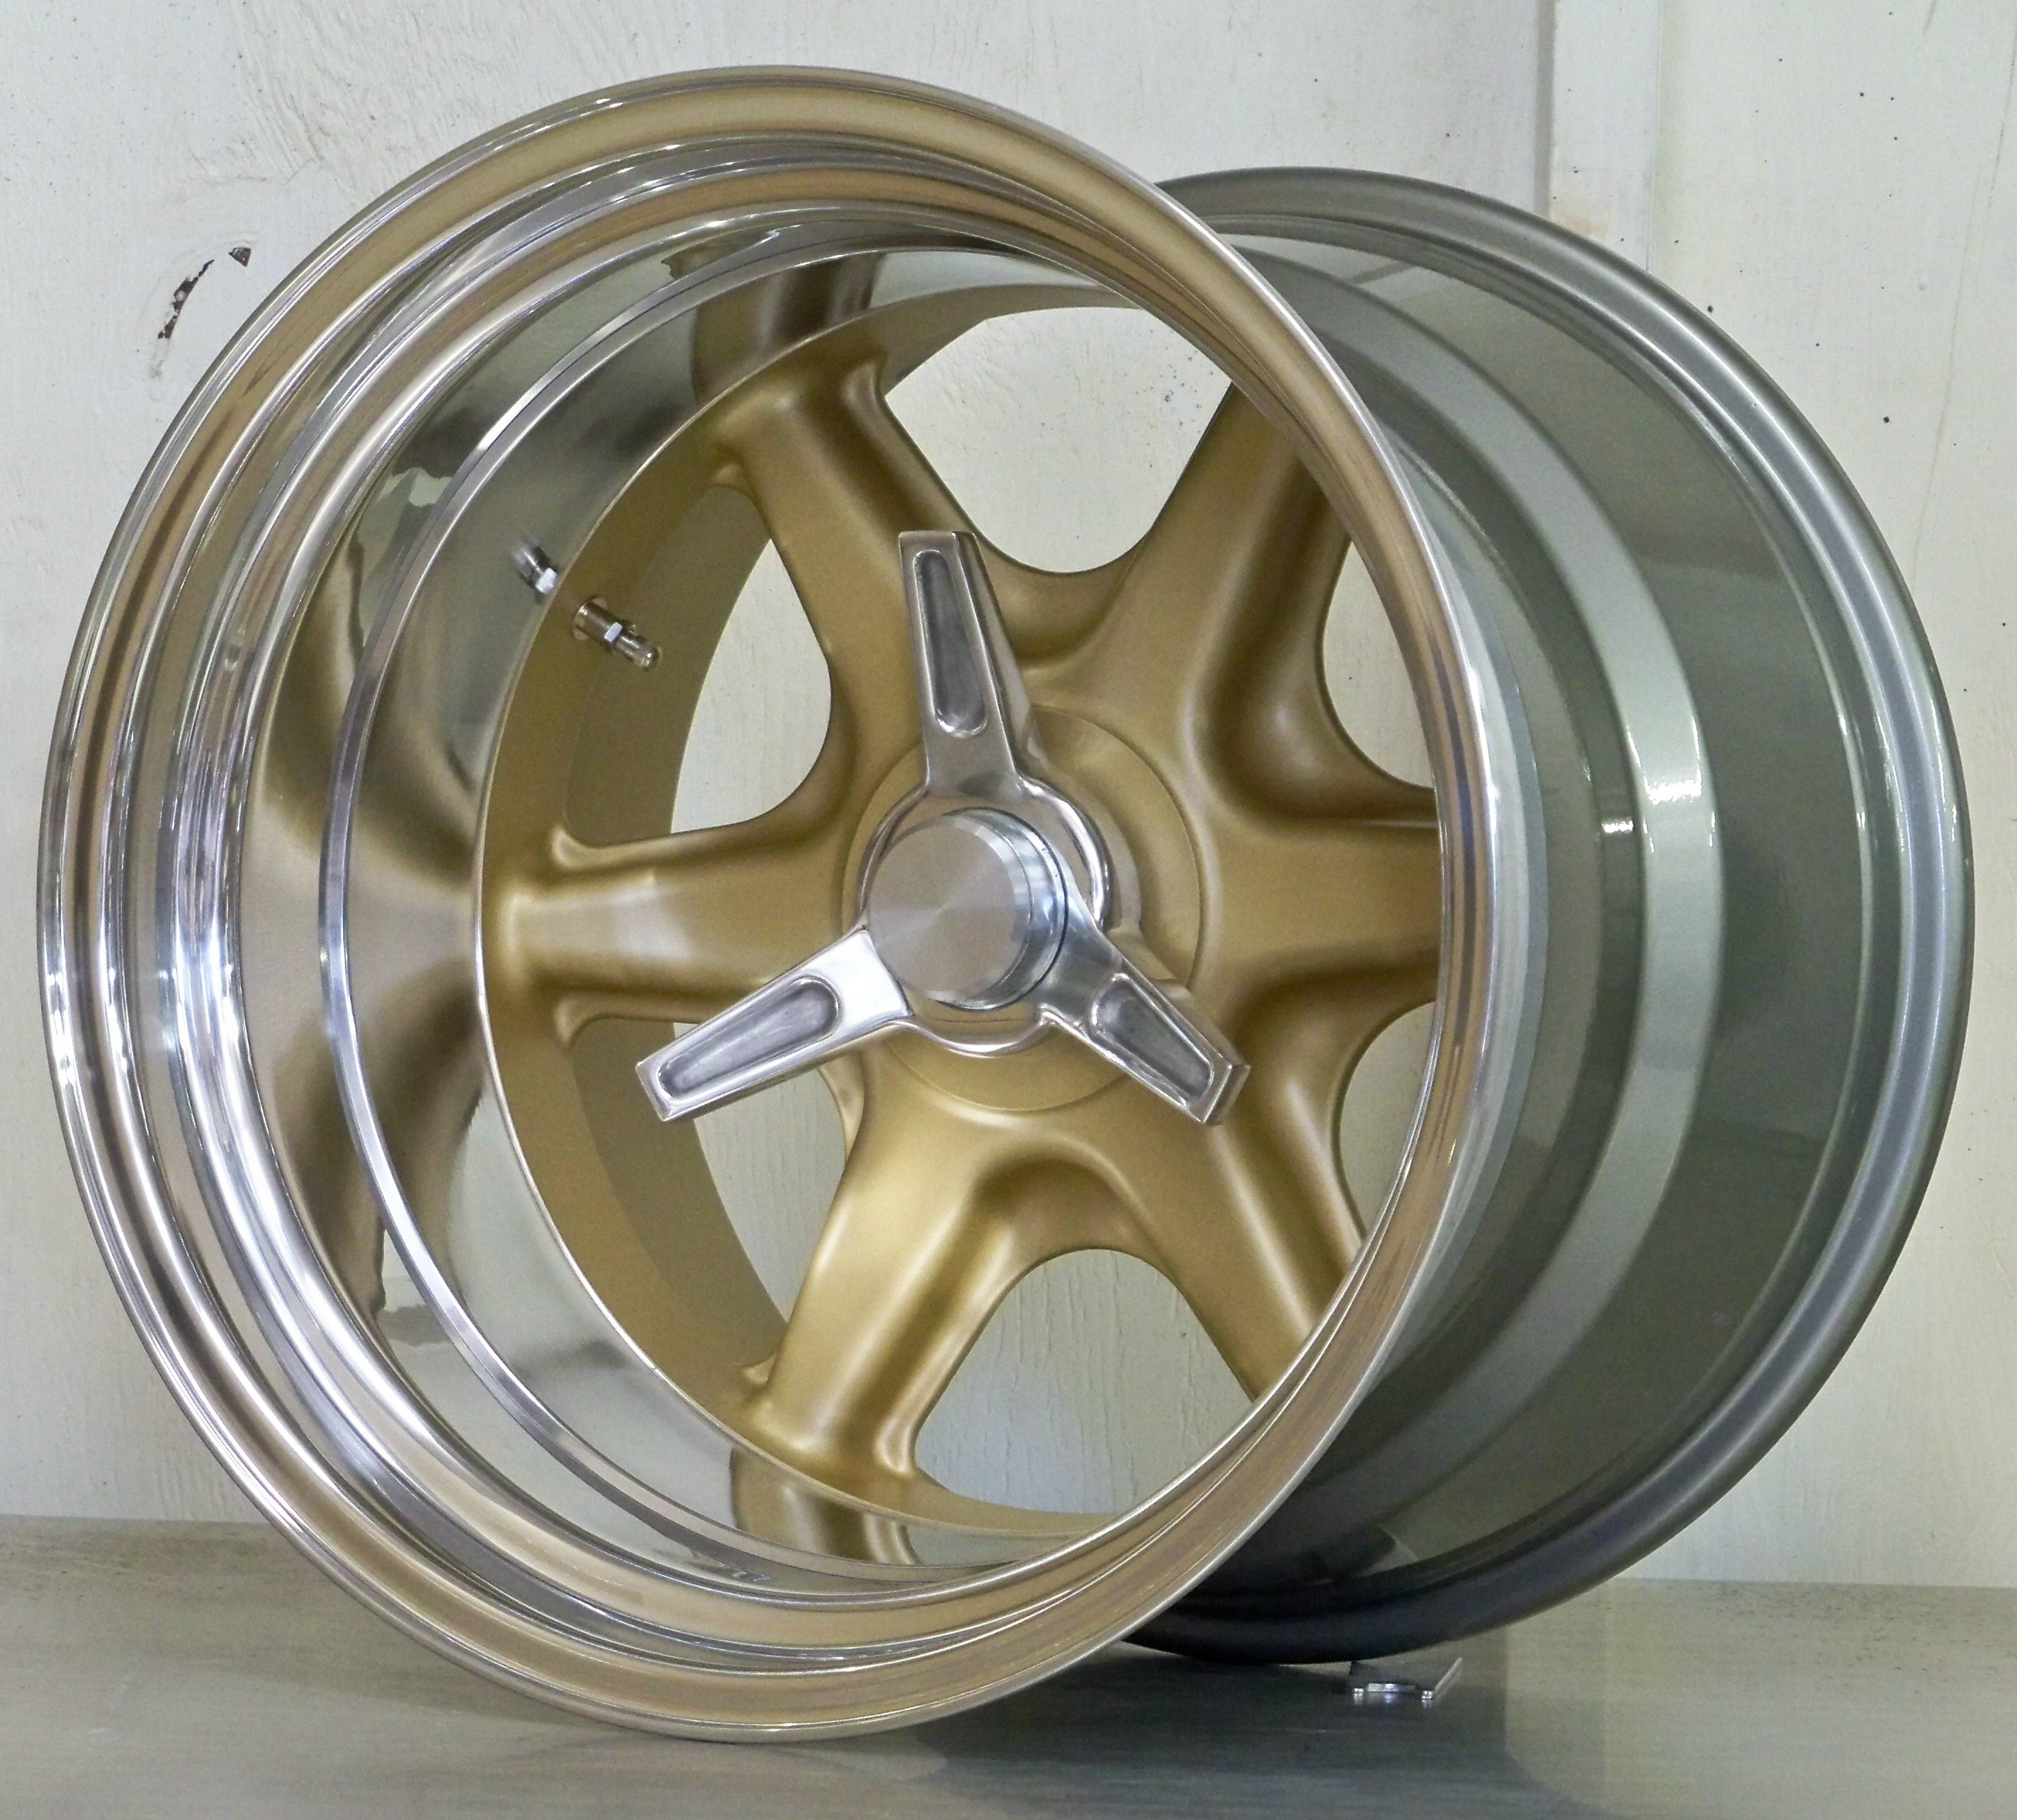 BR17 Wide rear 17 x 8 17 x 12.5 plus adapters/spinners